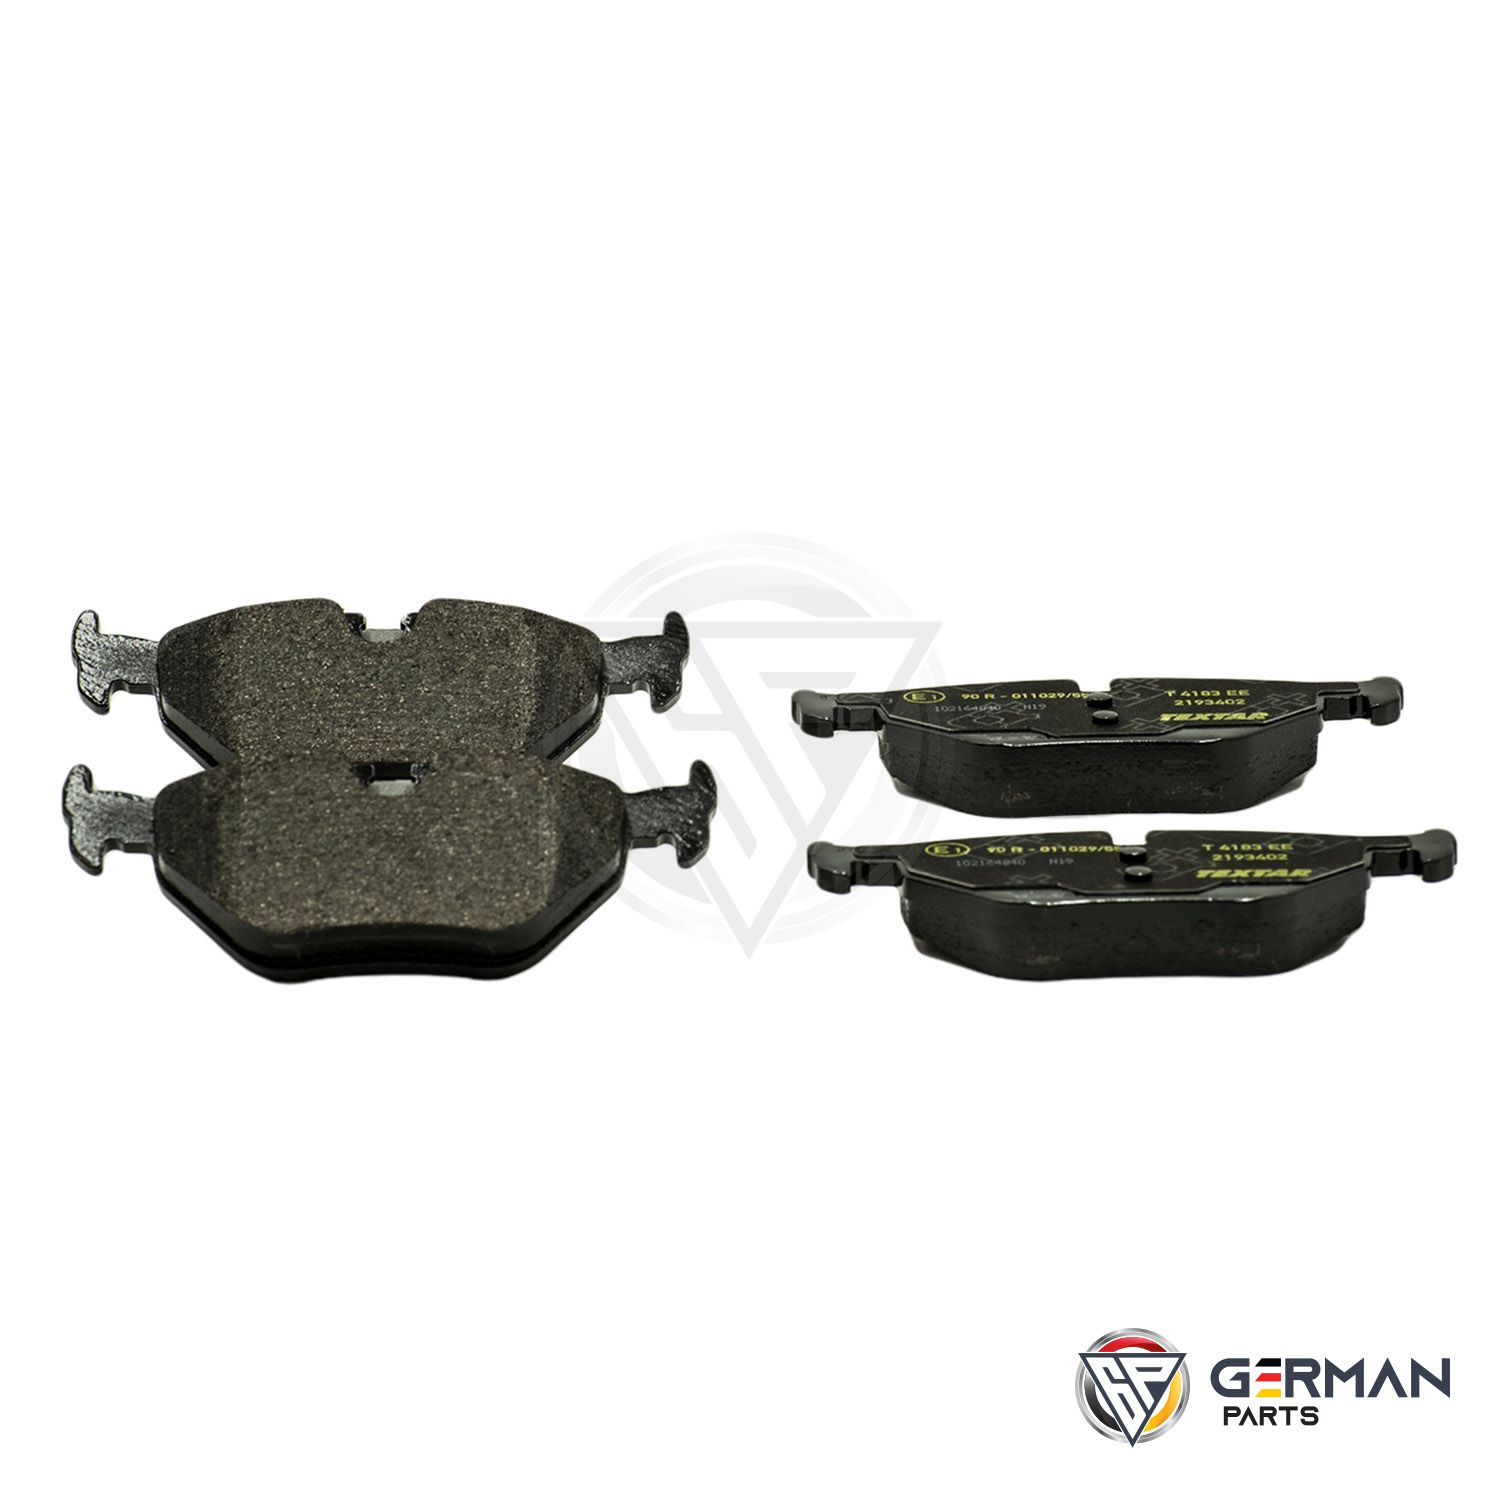 Buy Textar Rear Brake Pad Set 34216761239 - German Parts